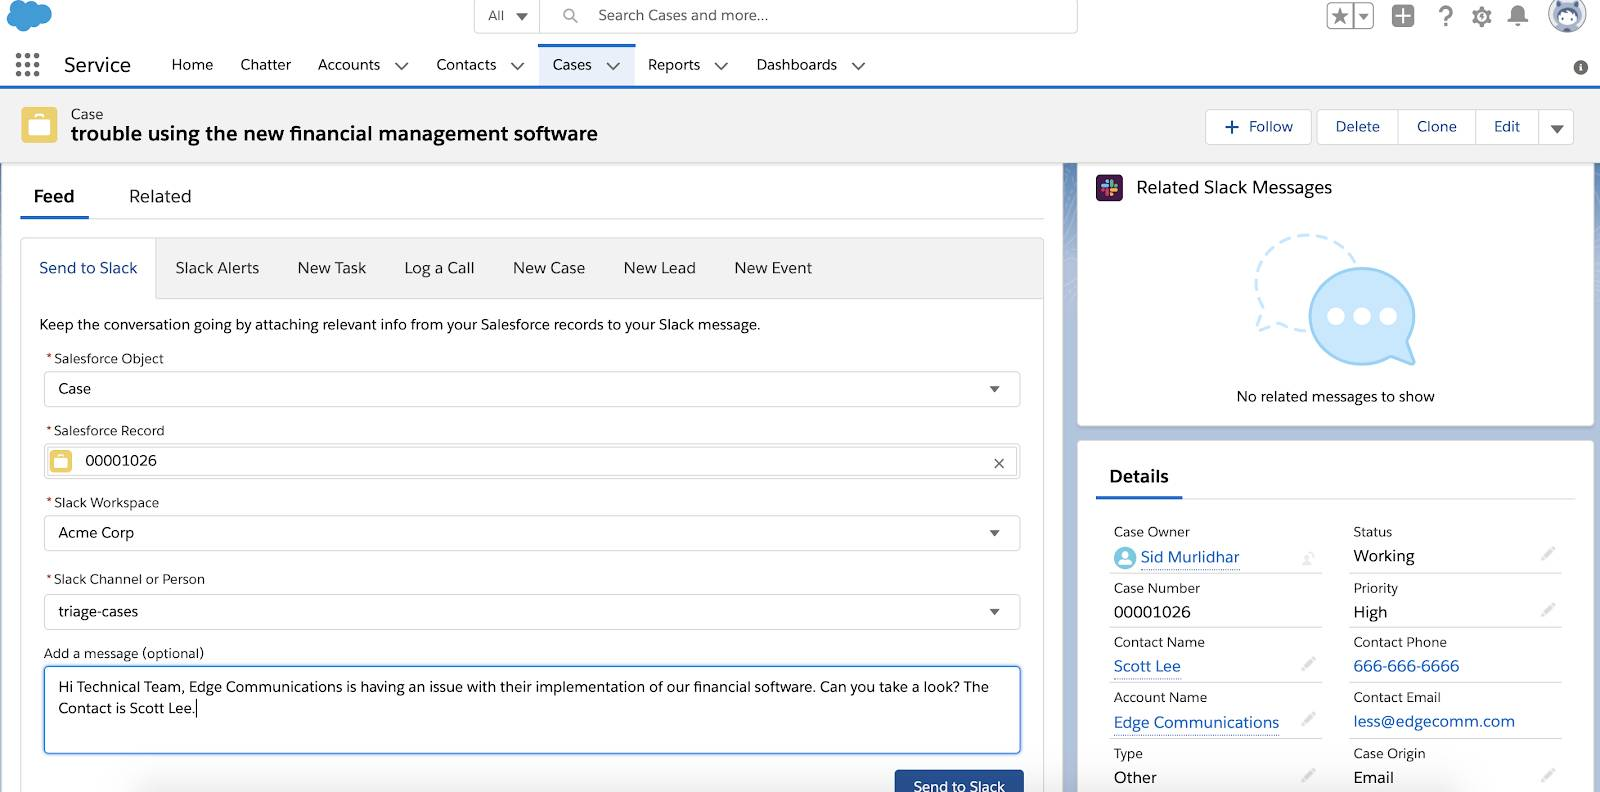 Image of the Case in Salesforce with the Feed tab with the Send to Slack action highlighted, with a message for the technical team